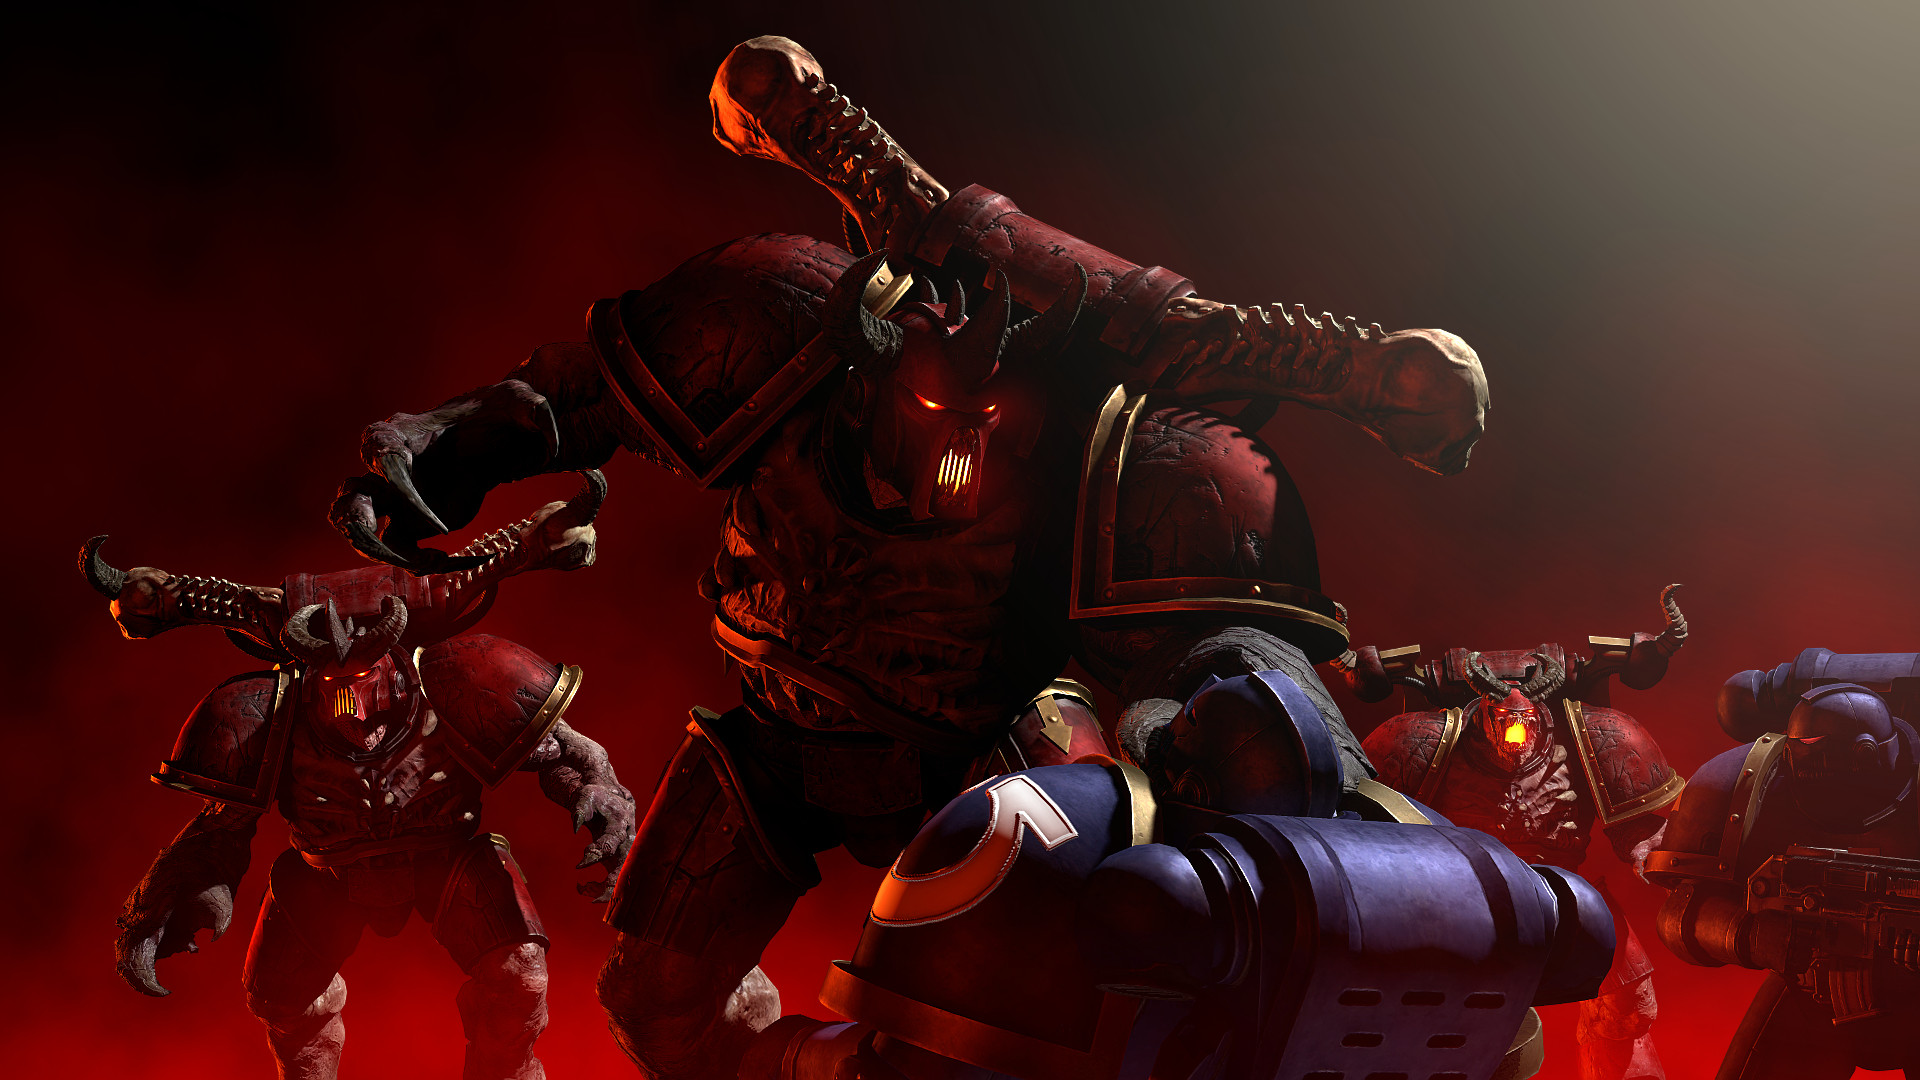 1920x1080 ... GMod/SFM: Possessed Chaos Space Marines by Joazzz2